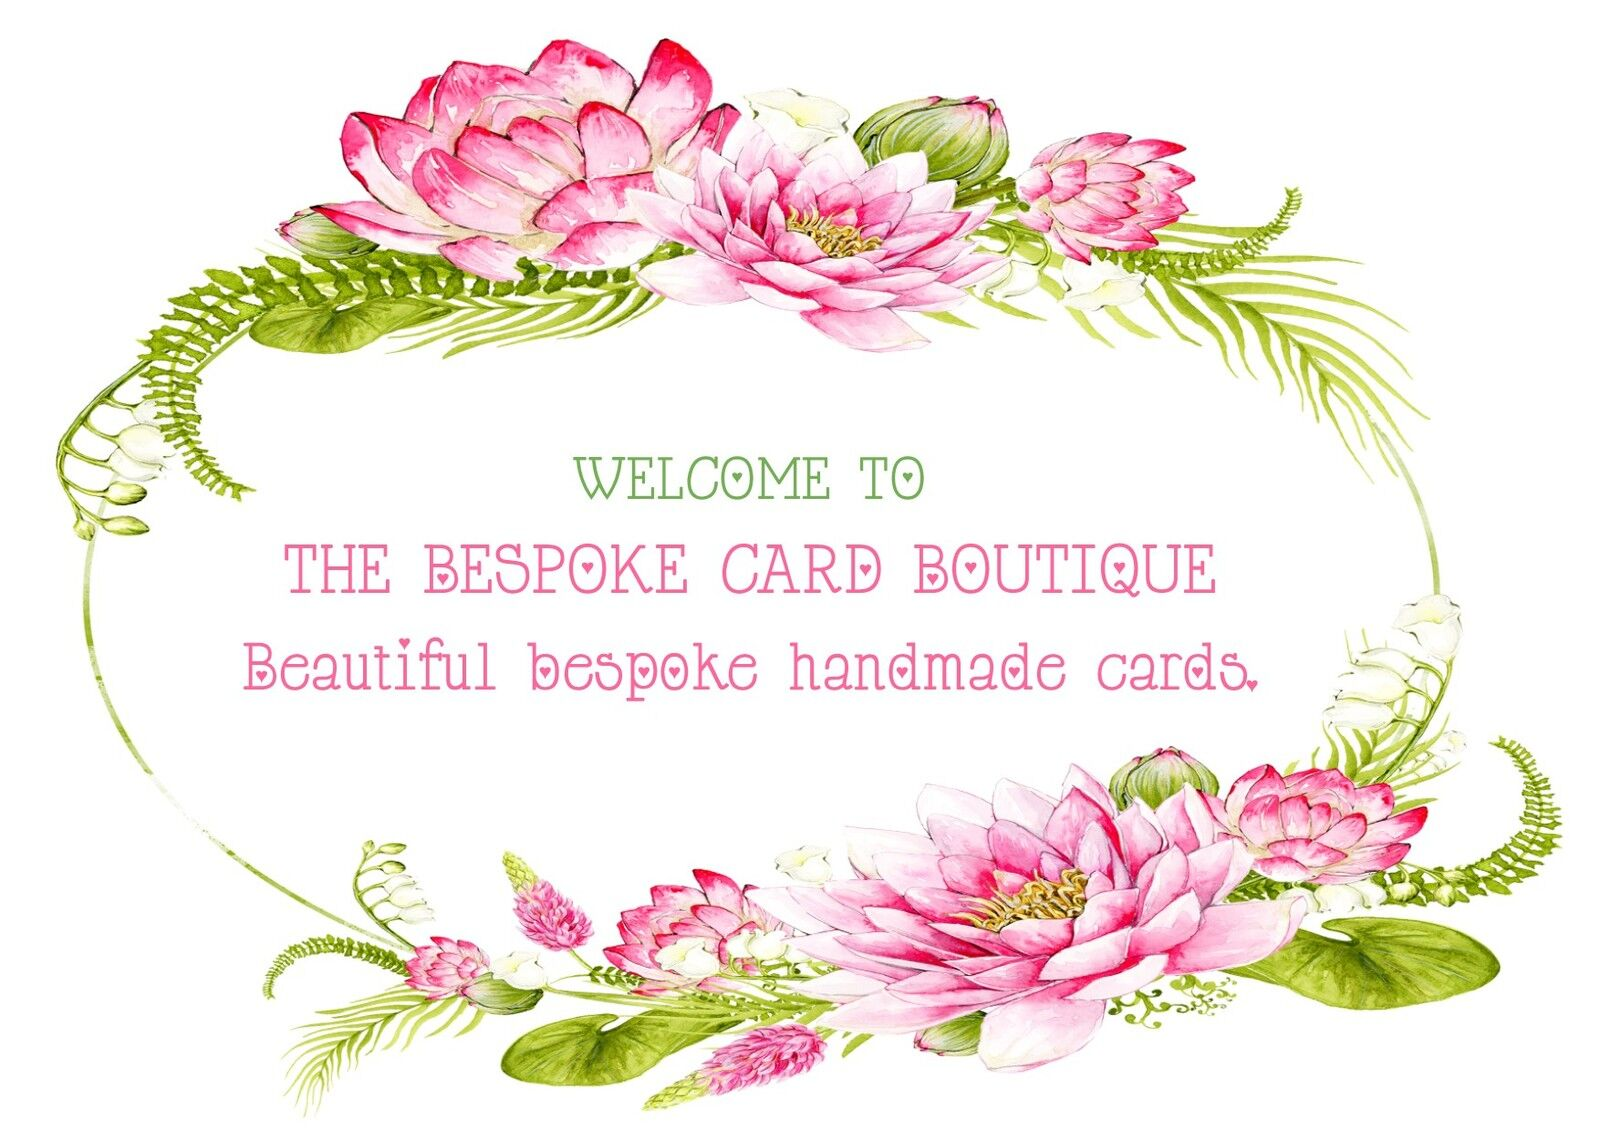 The Bespoke Card Boutique